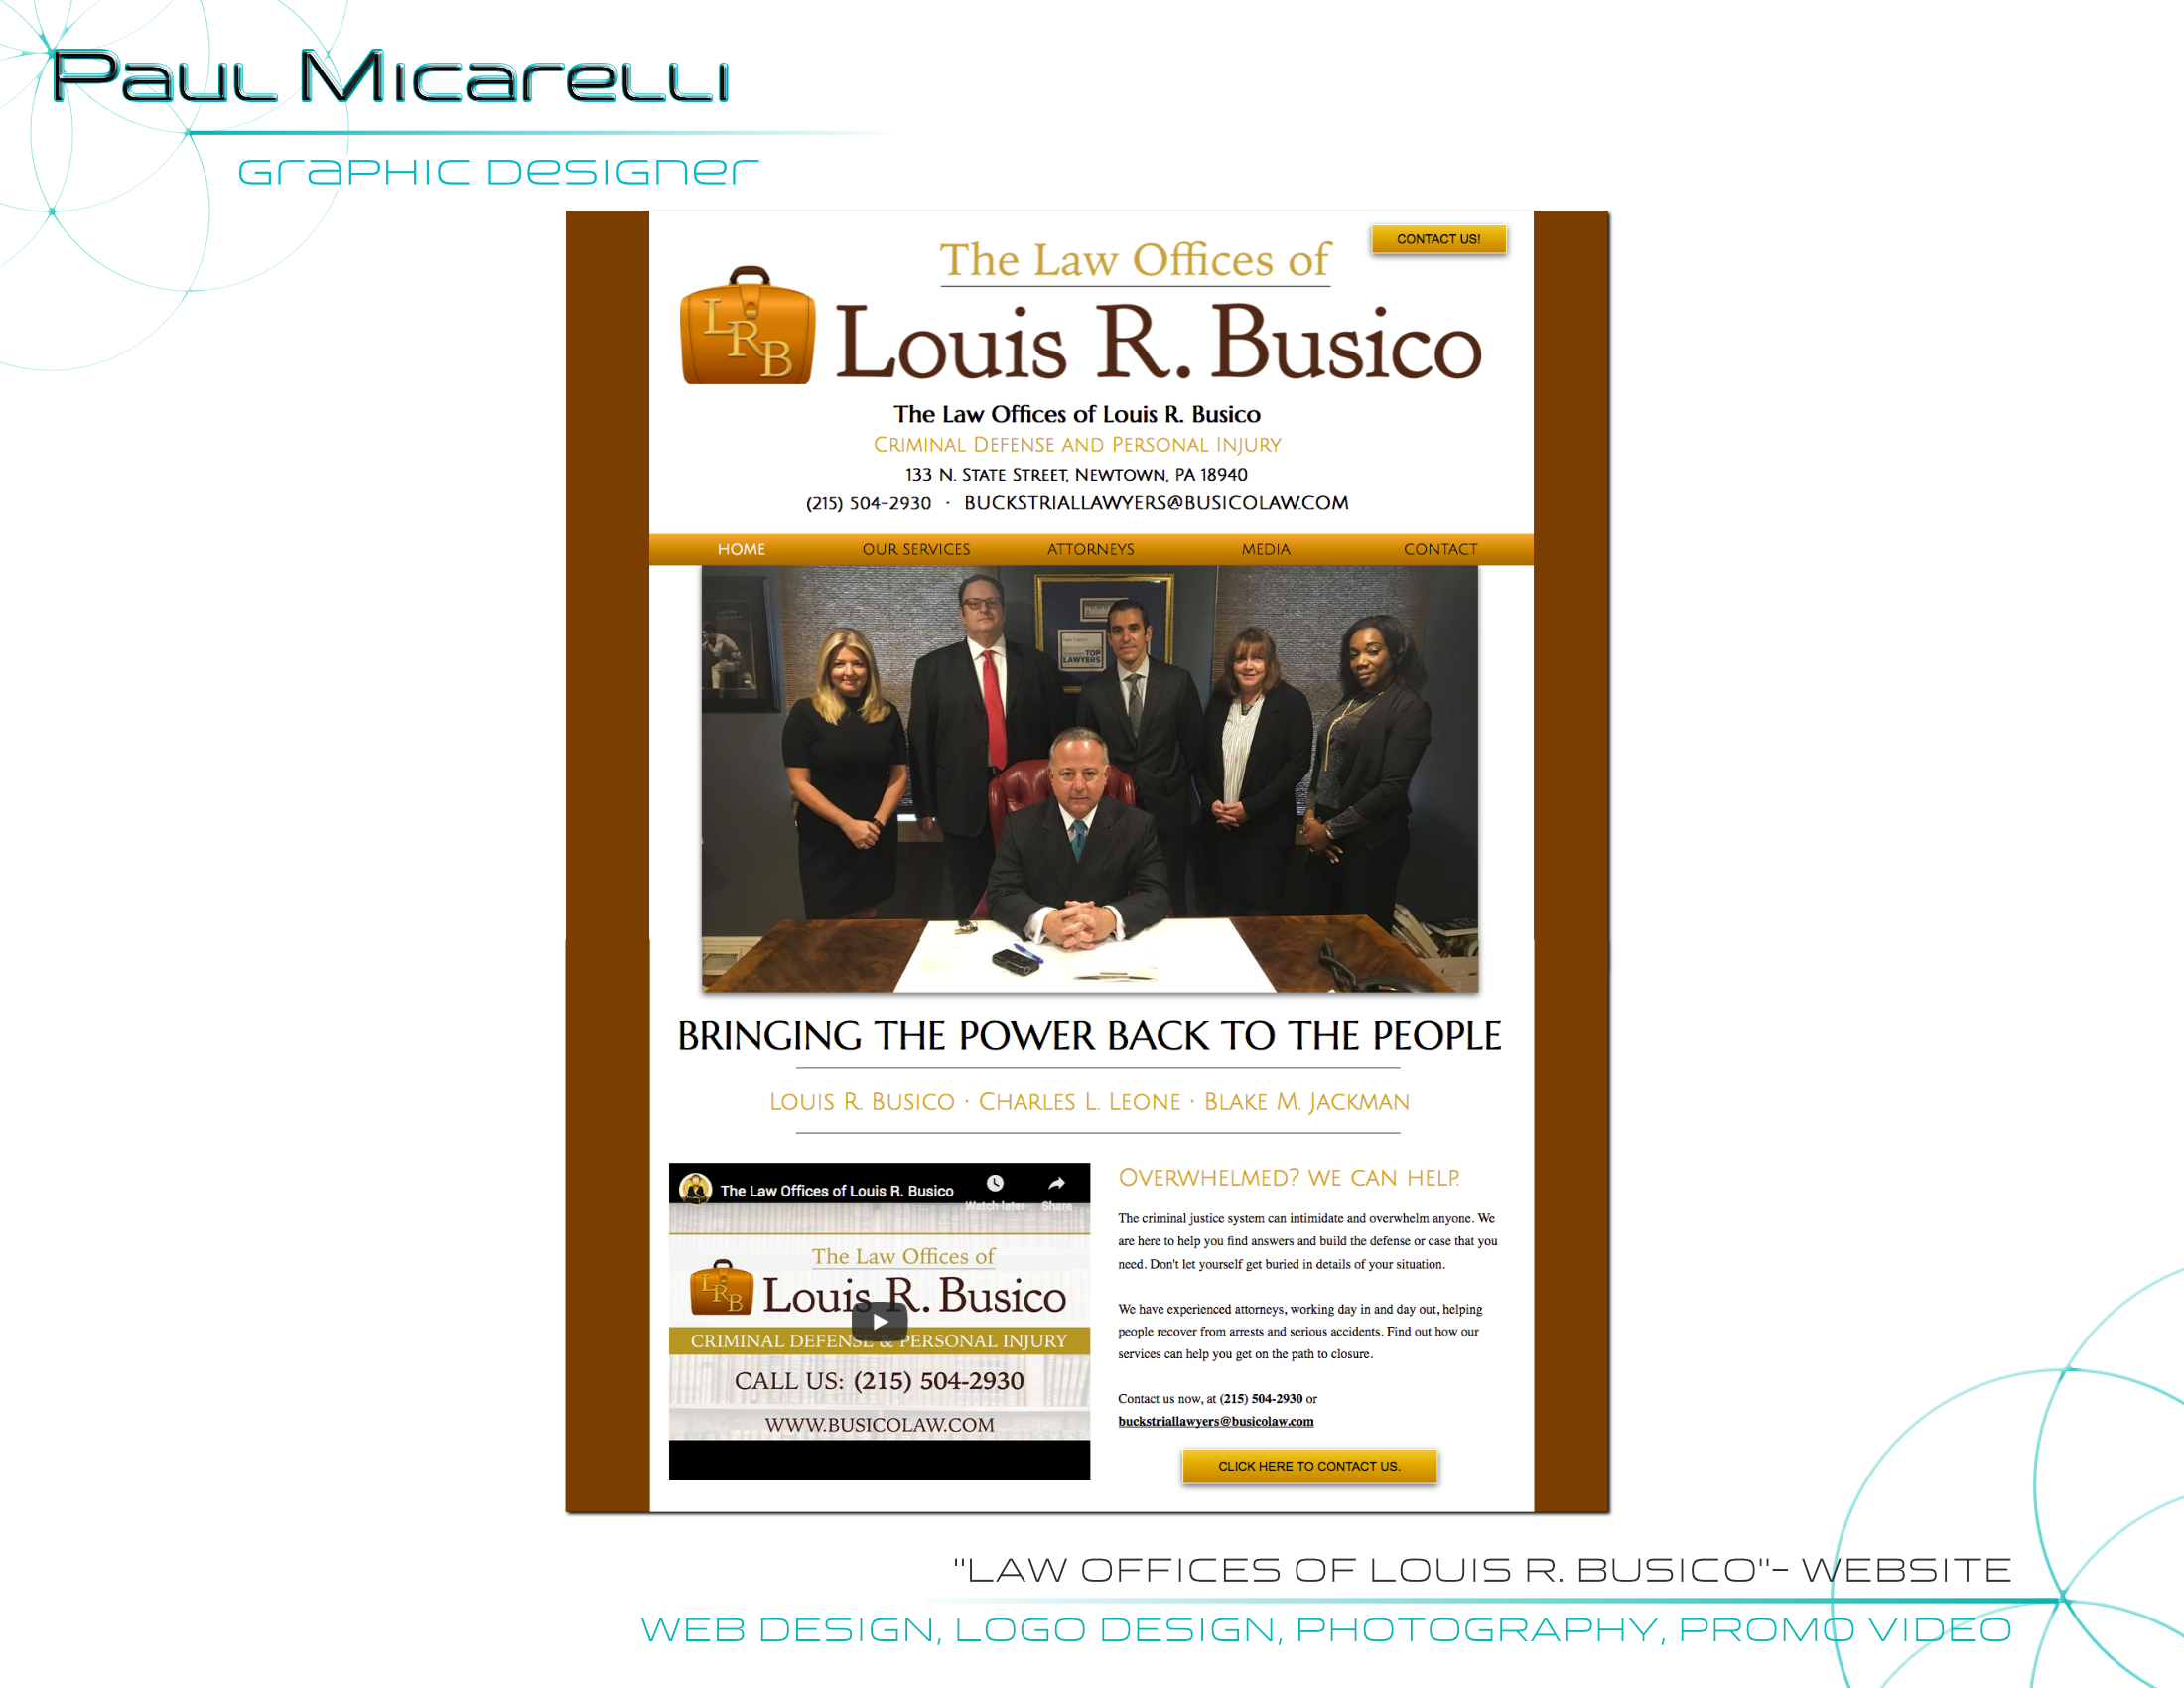 Paul-Micarelli-Busico Law Website